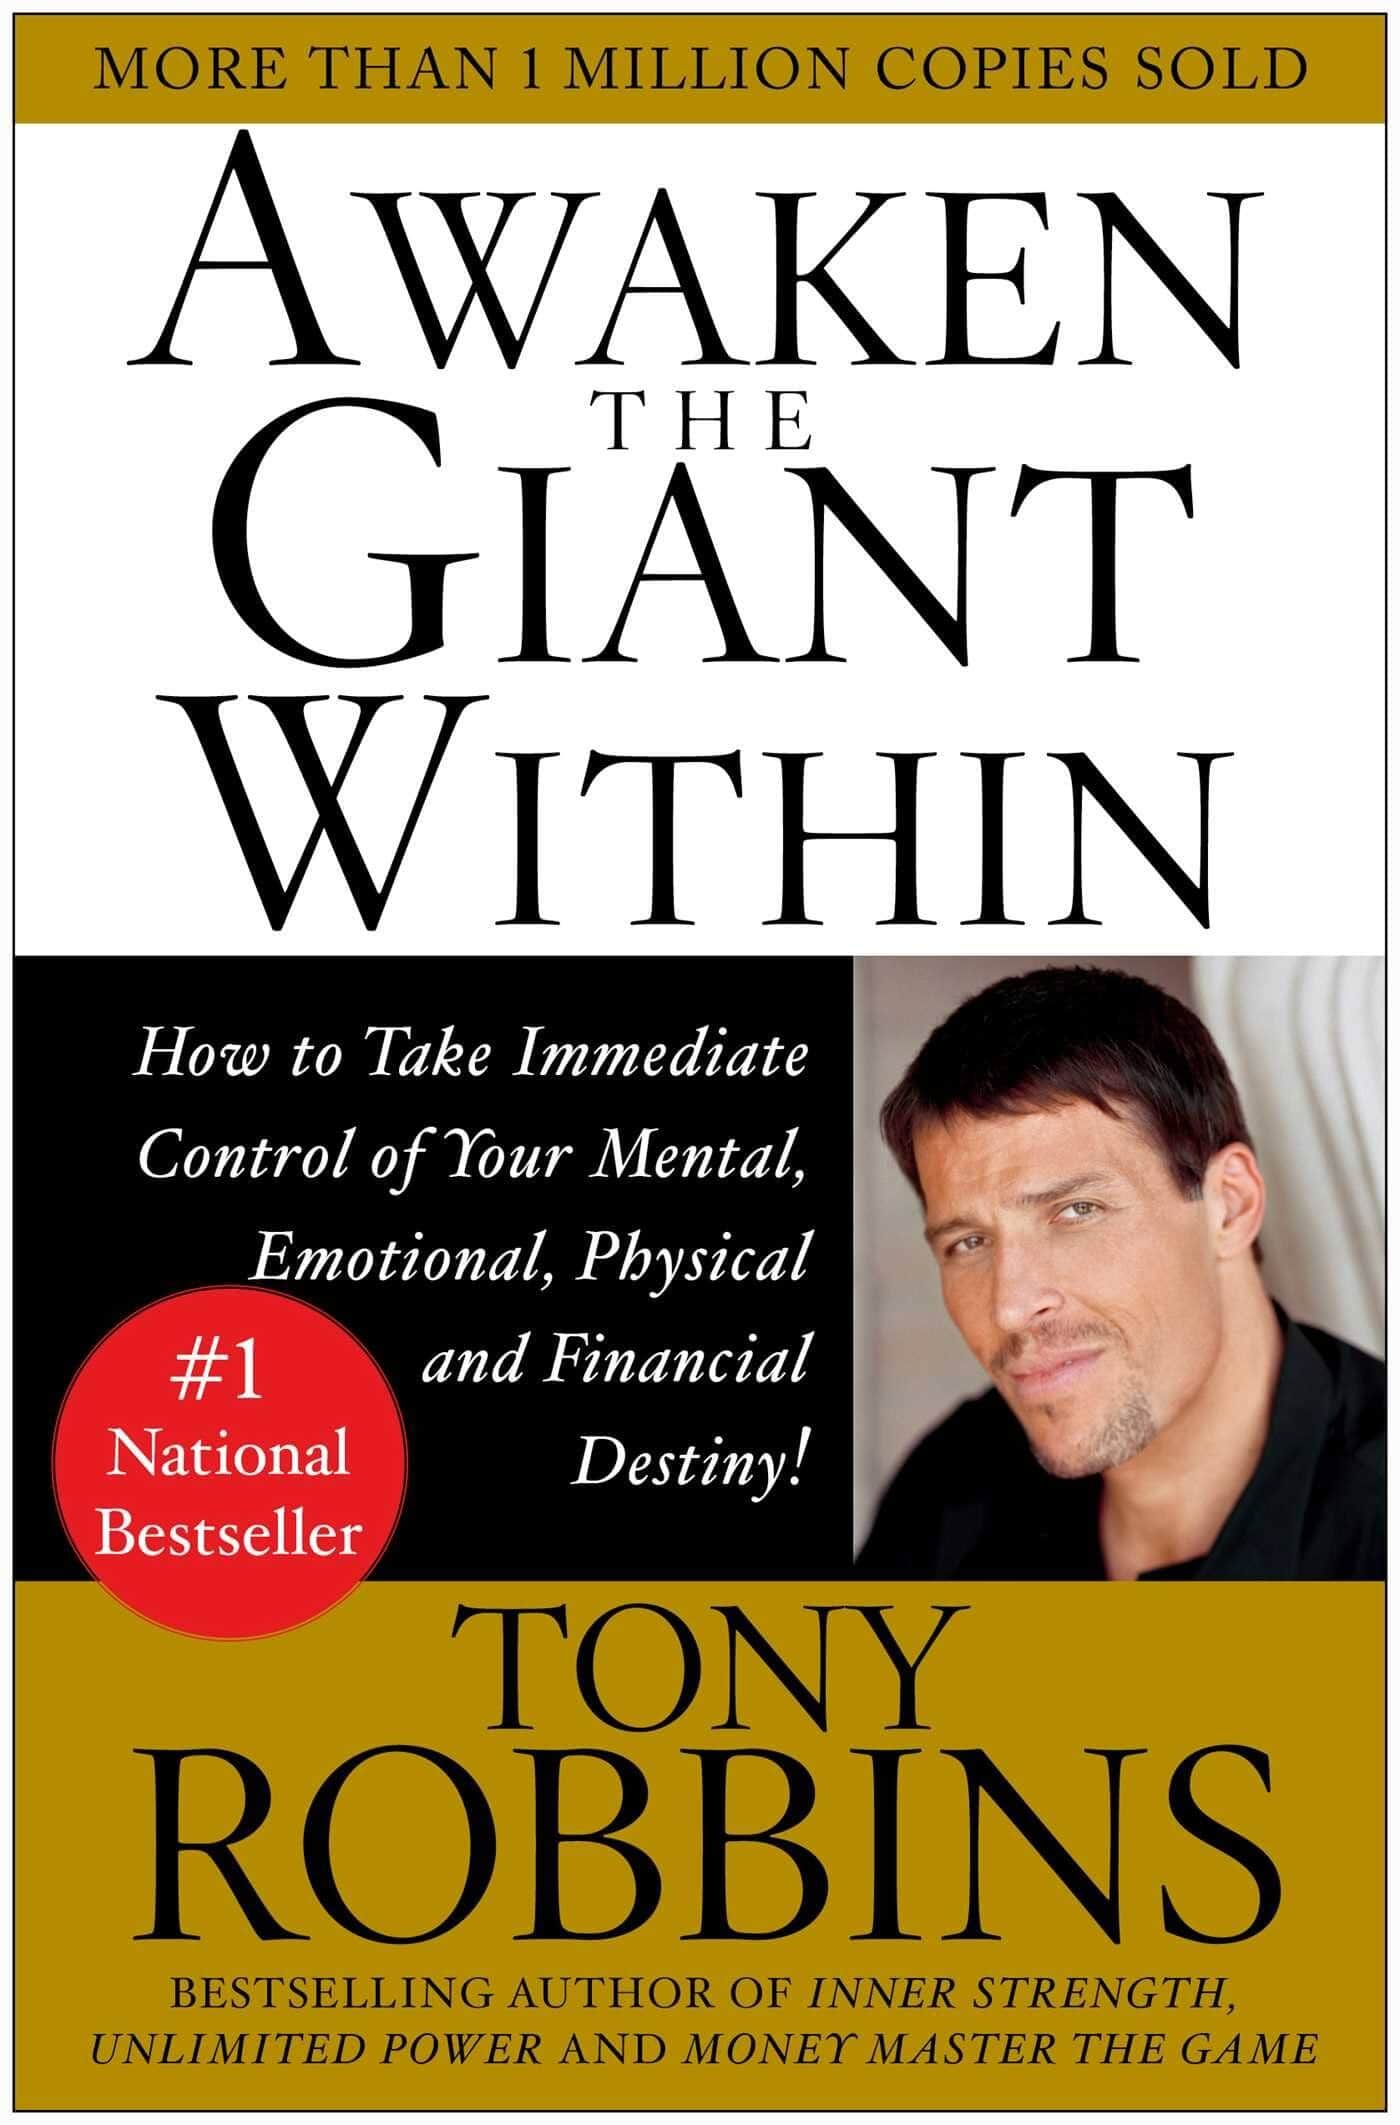 Awaken-the-Giant-Within-How-to-Take-Immediate-Control-of-Your-Mental-Emotional-Physical-and-Financial-Destiny-tony-robbins